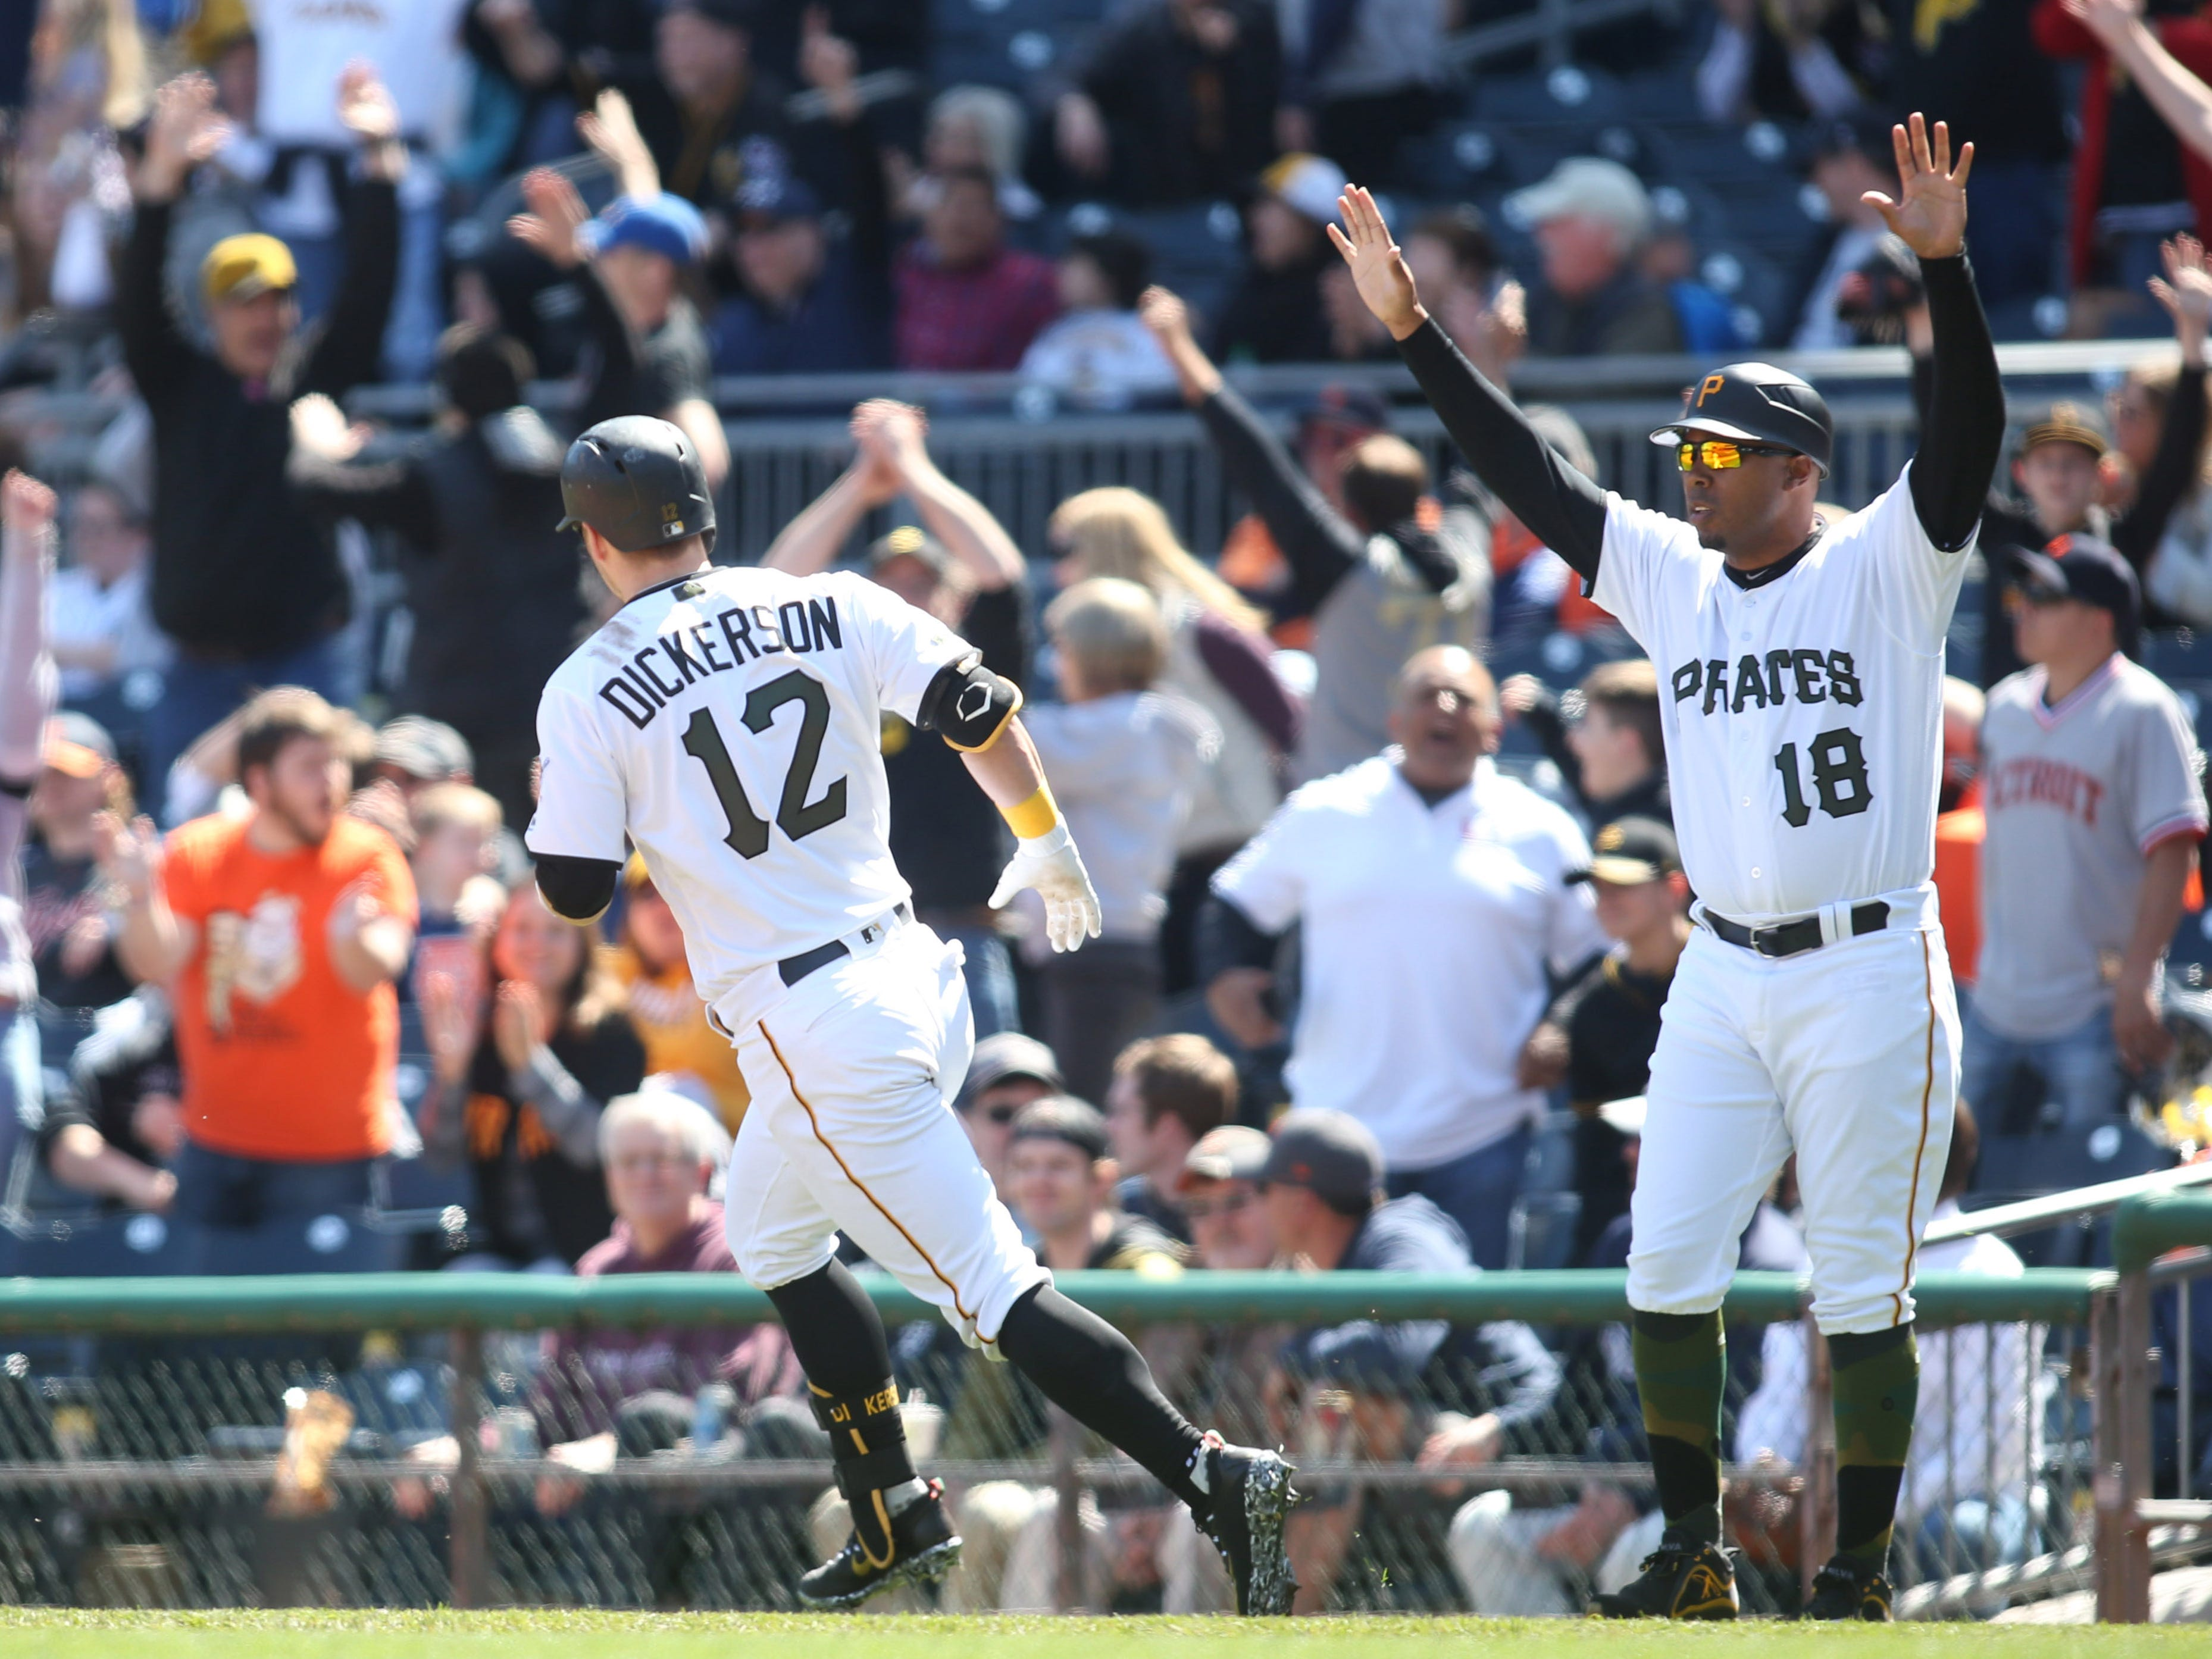 April 26 in Pittsburgh: Pirates 1, Tigers 0. Fans cheer as Corey Dickerson circles the bases on a walk-off home run in the ninth inning at PNC Park.